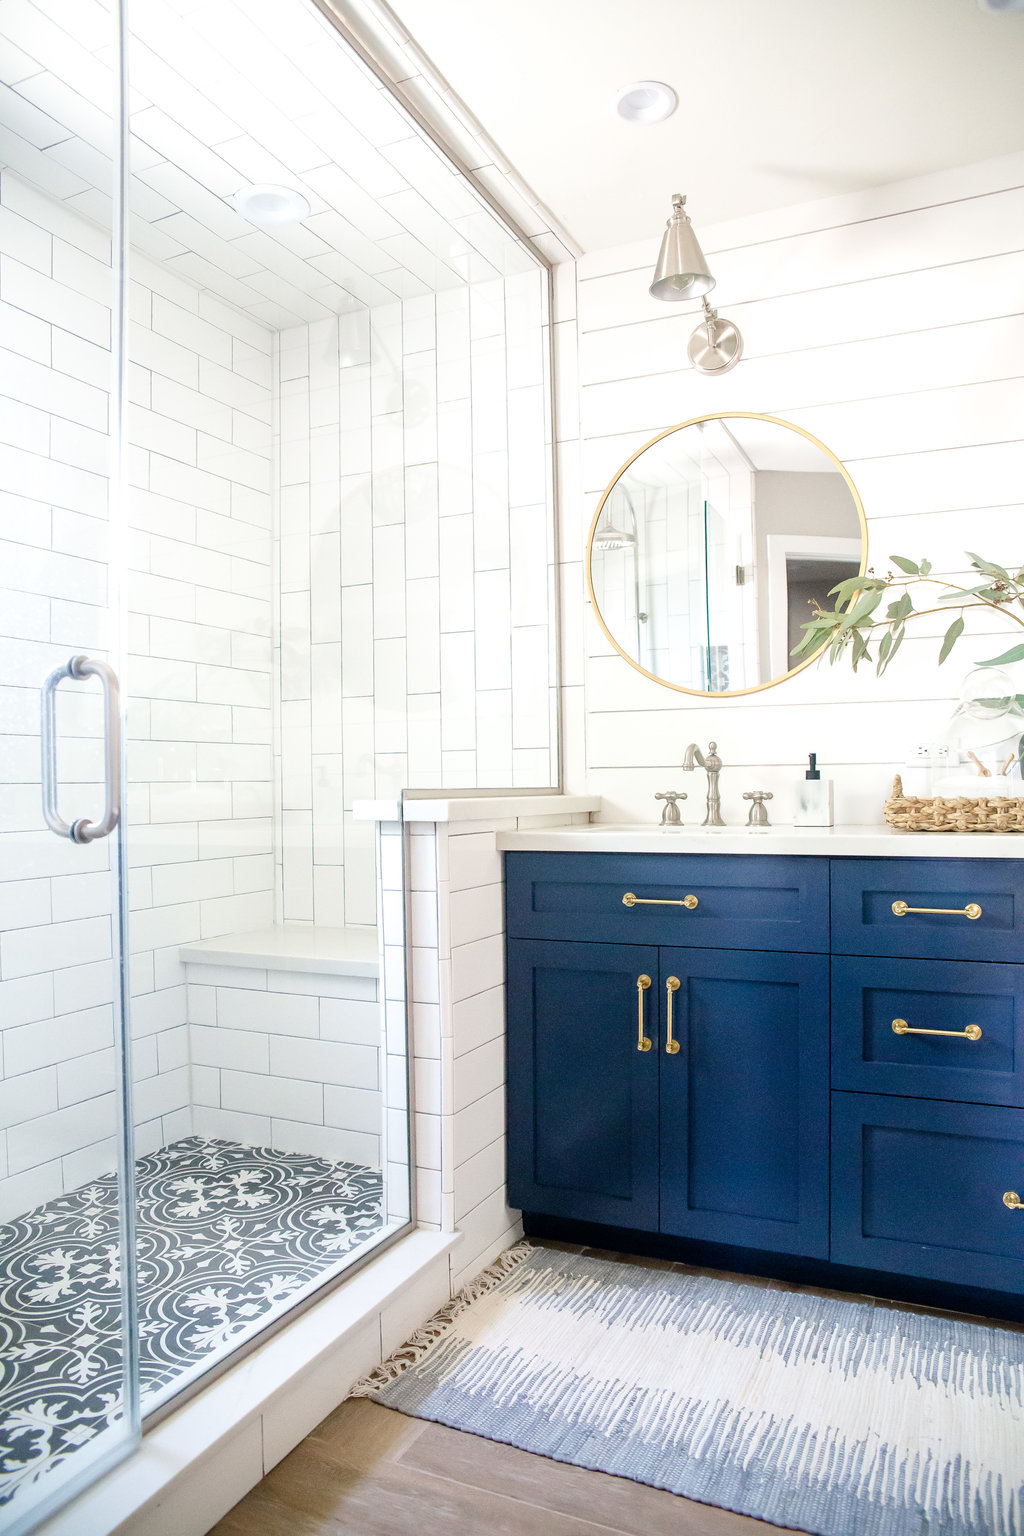 Shiplap And Long Subway Tile With Wood Floor And Navy Vanity Love The Look Cottage Bathroom Decor White Subway Tile Shower Bathroom Trends